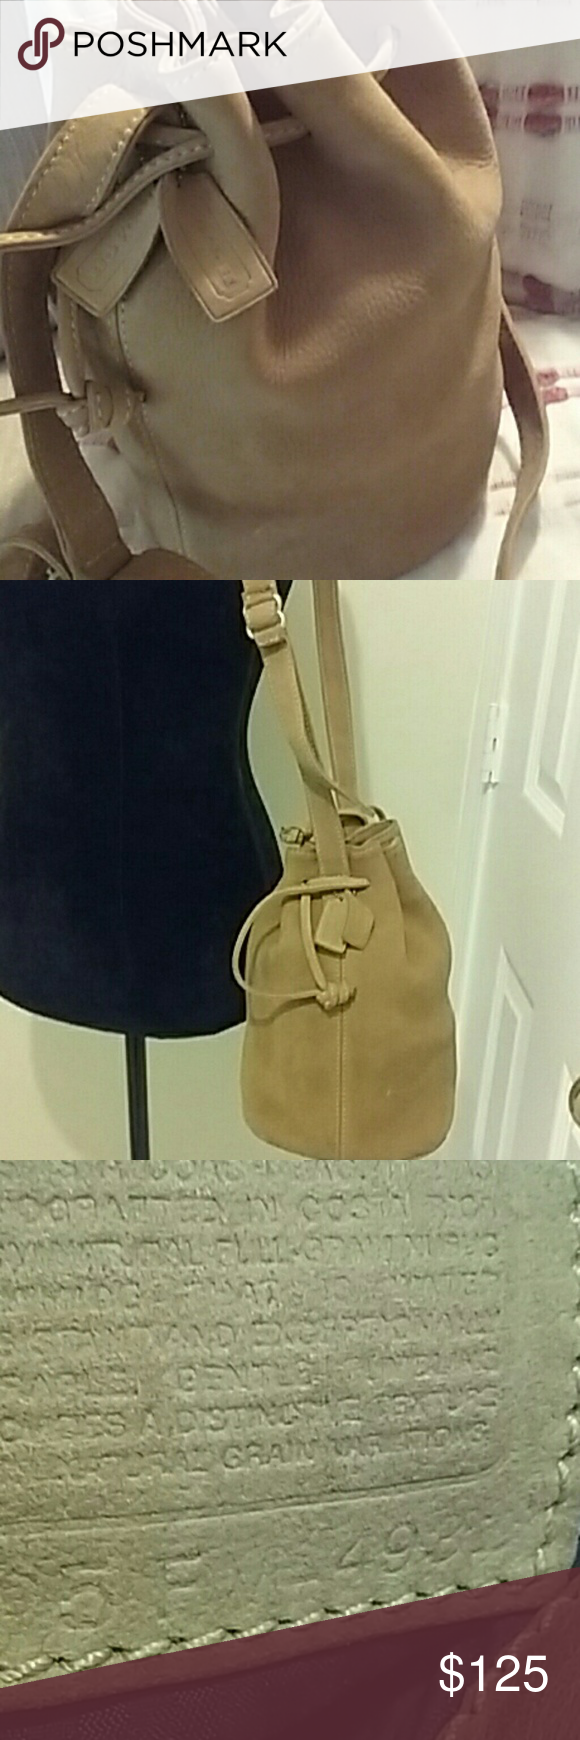 Beautiful Coach Drawstring  Nubuc, style 4931 Authentic  vintage natural grain nubuc bag. Suede like appearance  and a luxurious  soft crushed  velvet feel.  Distinct pebbled texture.  Water resistant! Coach  Bags Shoulder Bags